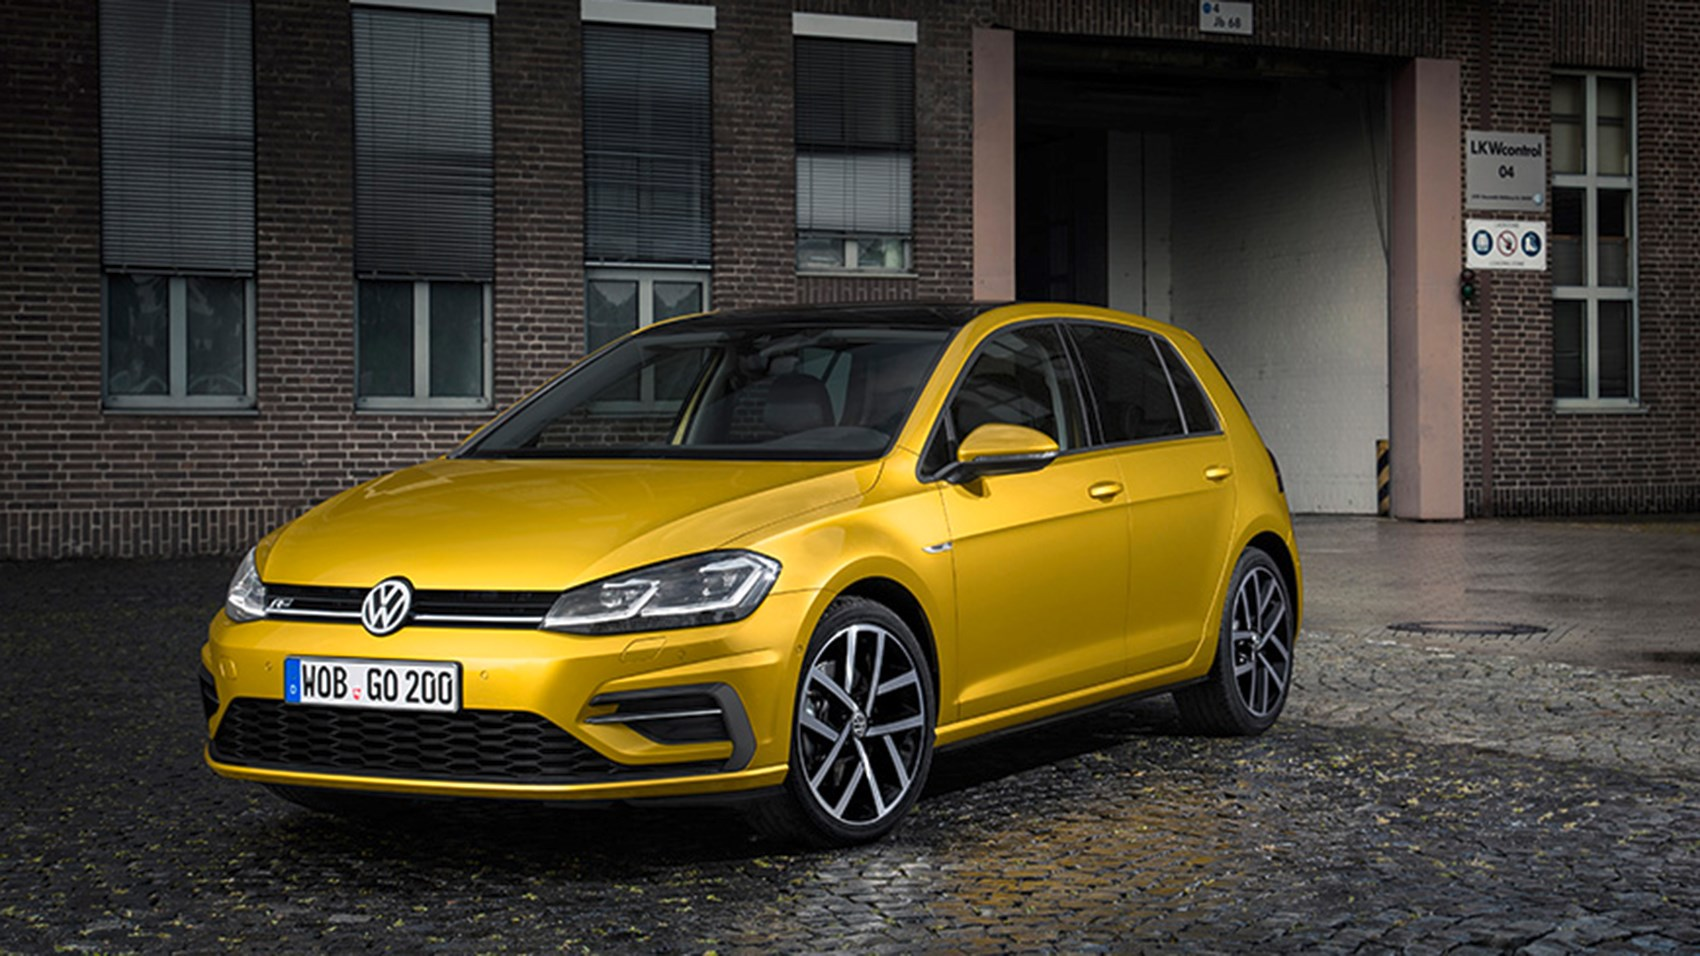 Volkswagen Golf 2 0 TDI 150 R Line 5dr 2017 review